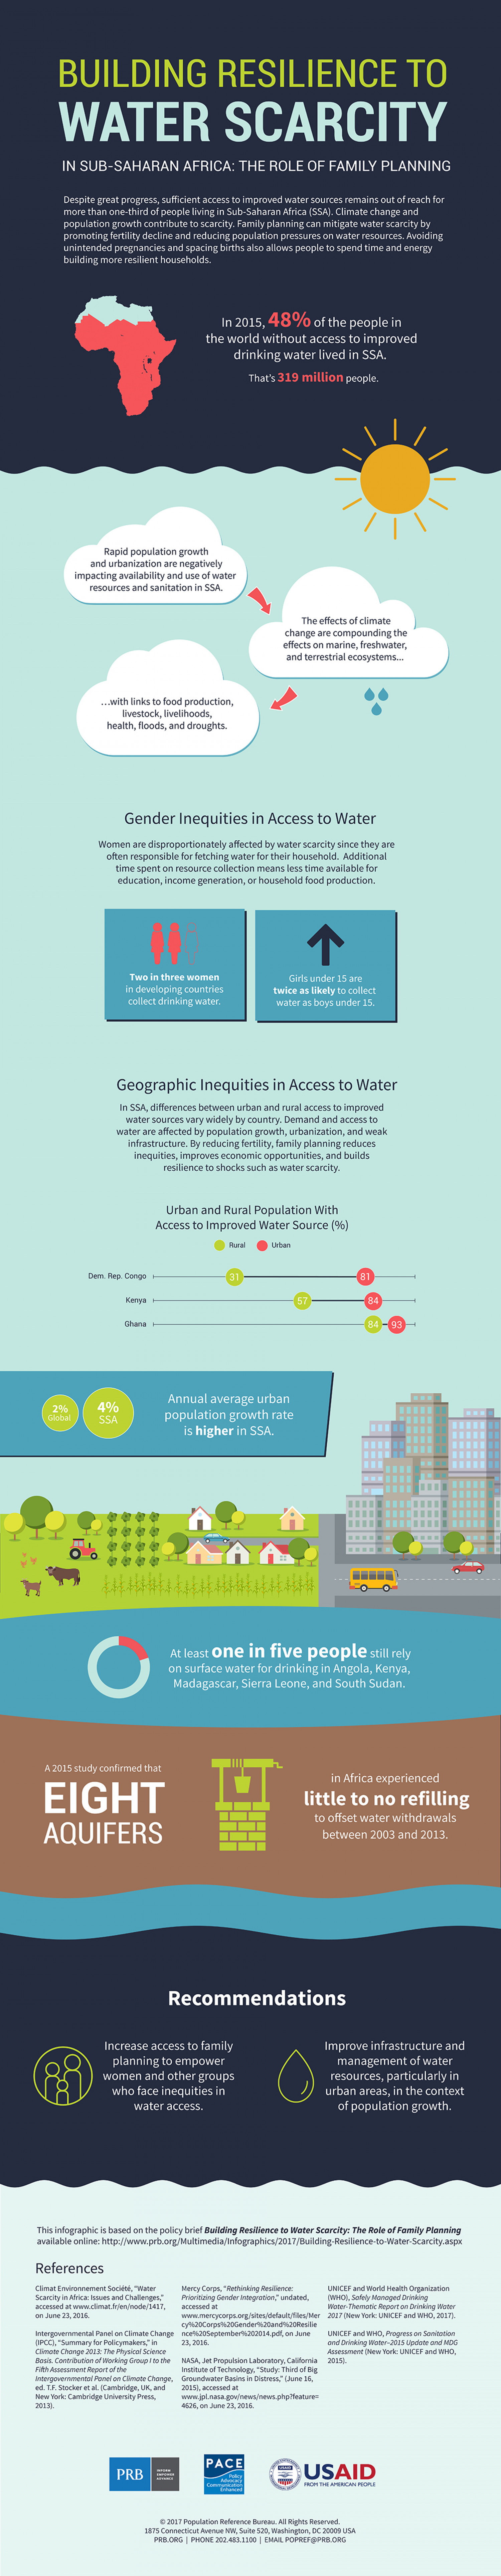 Building Resilience to Water Scarcity in Sub-Saharan Africa: The Role of Family Planning Infographic